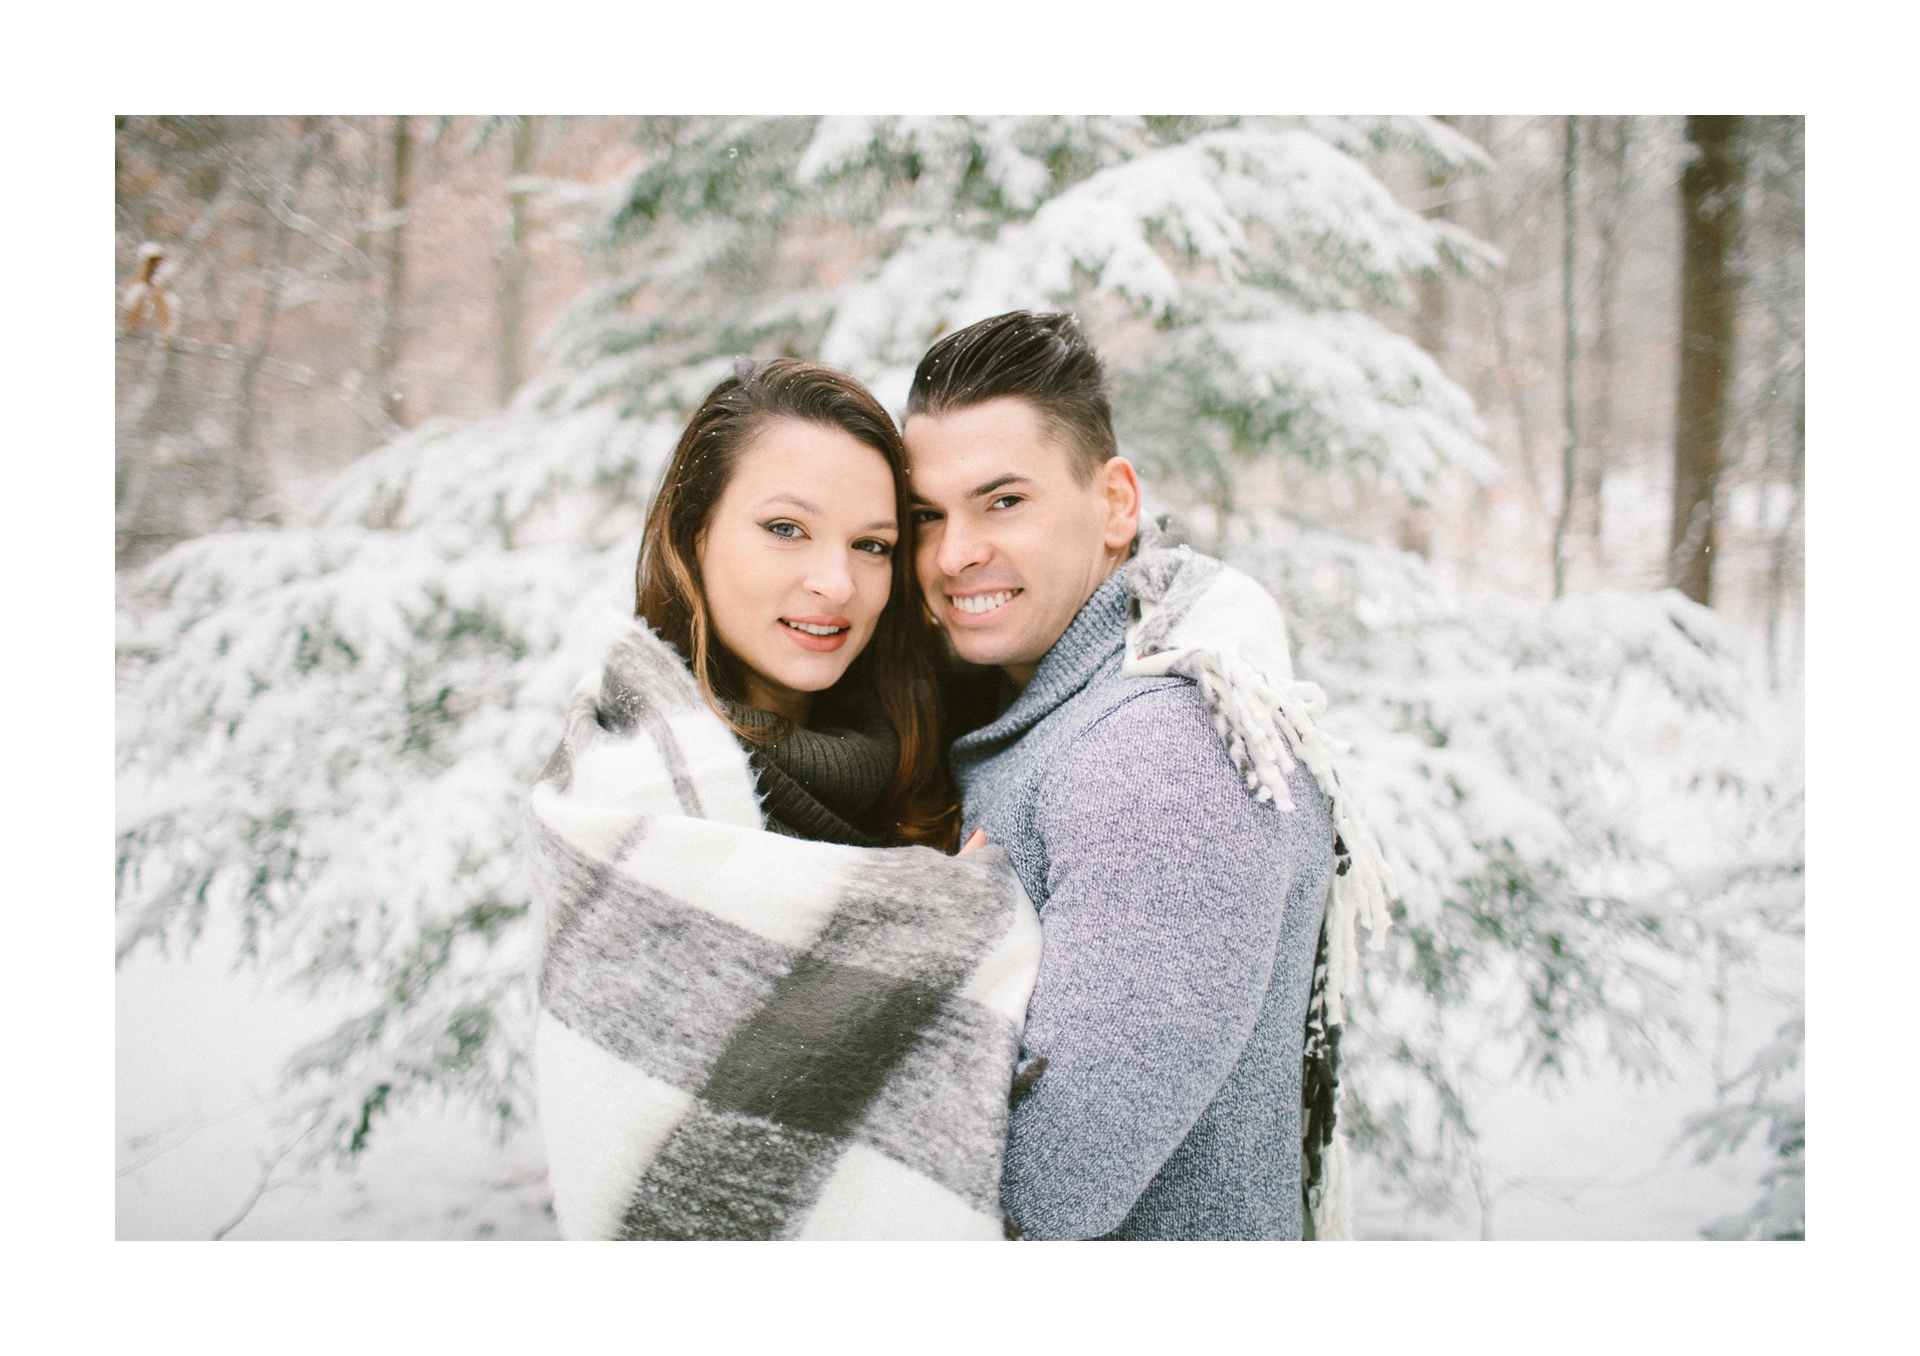 Cleveland Snowy Winter Engagement Session in Chagrin Metroparks 22.jpg